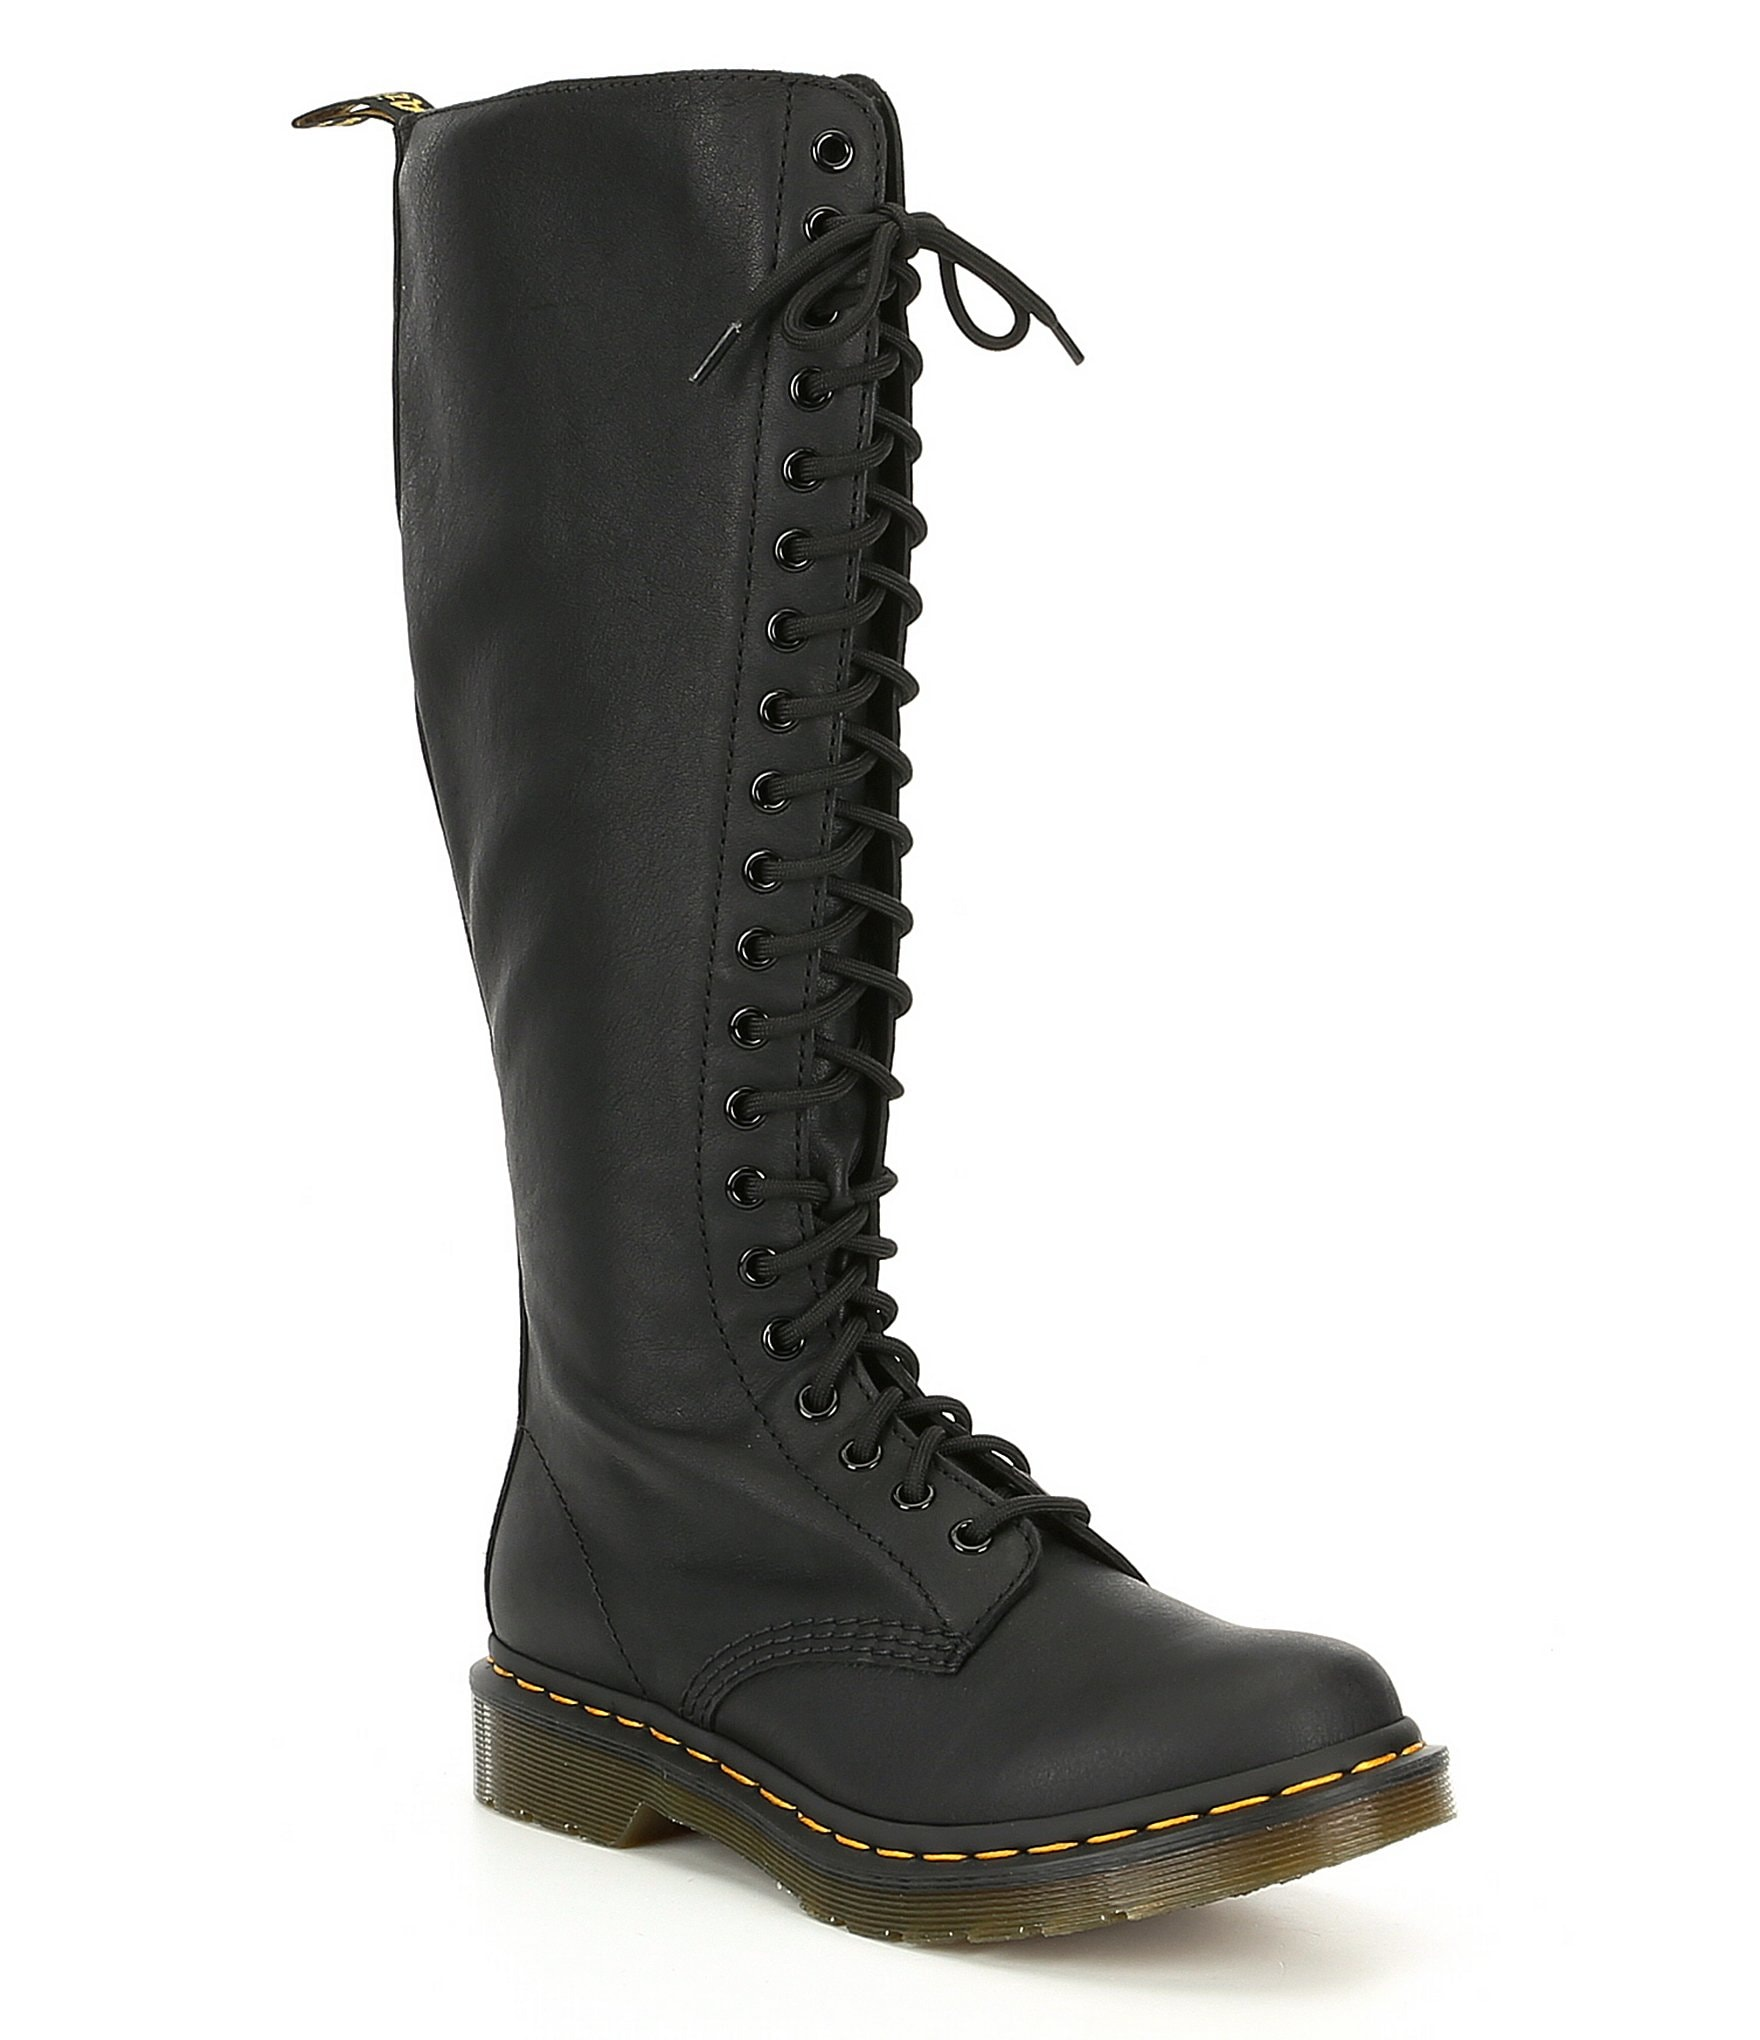 d9bcfc4c9a4 Dr. Martens 1B60 20-Eye Tall Leather Boots